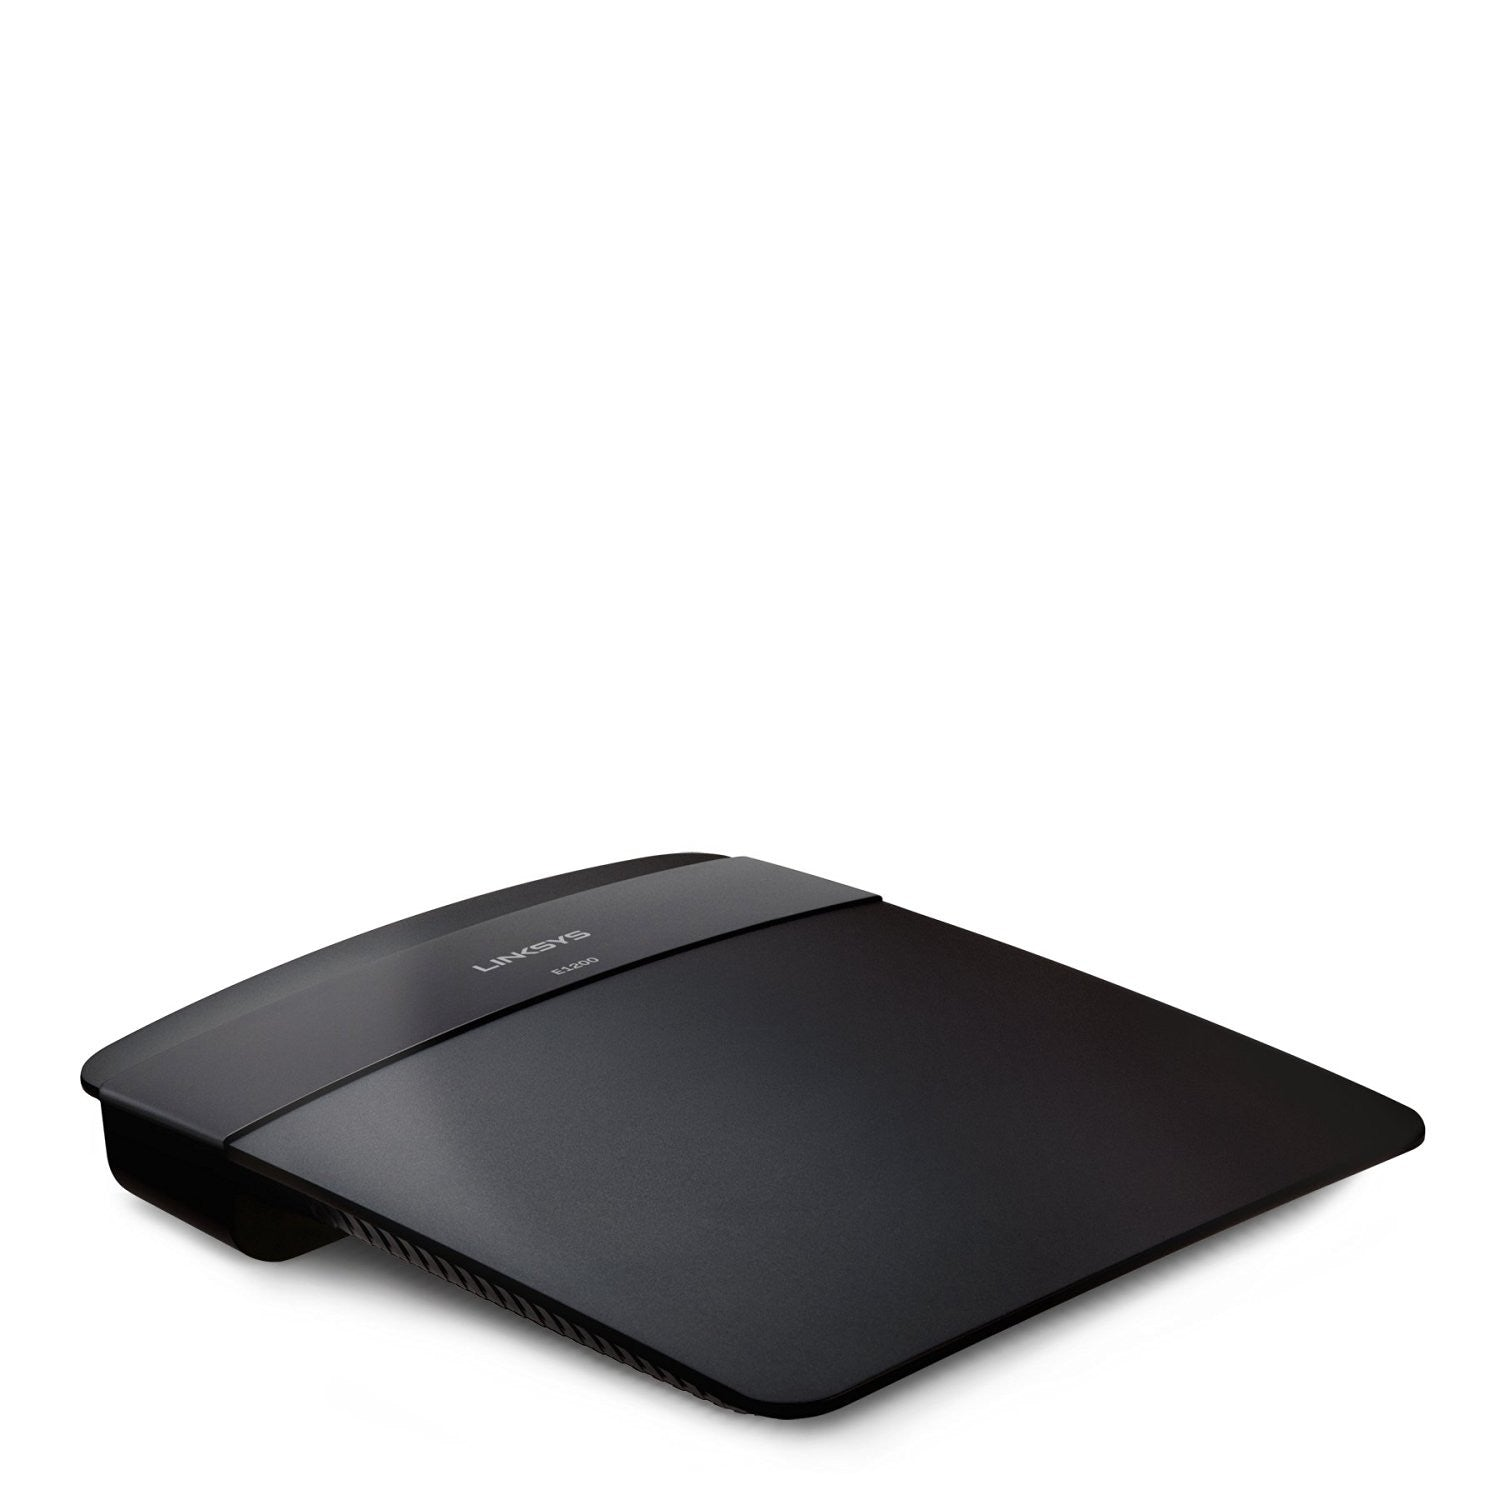 VPN Router Linksys N300 Flashed Tomato Router